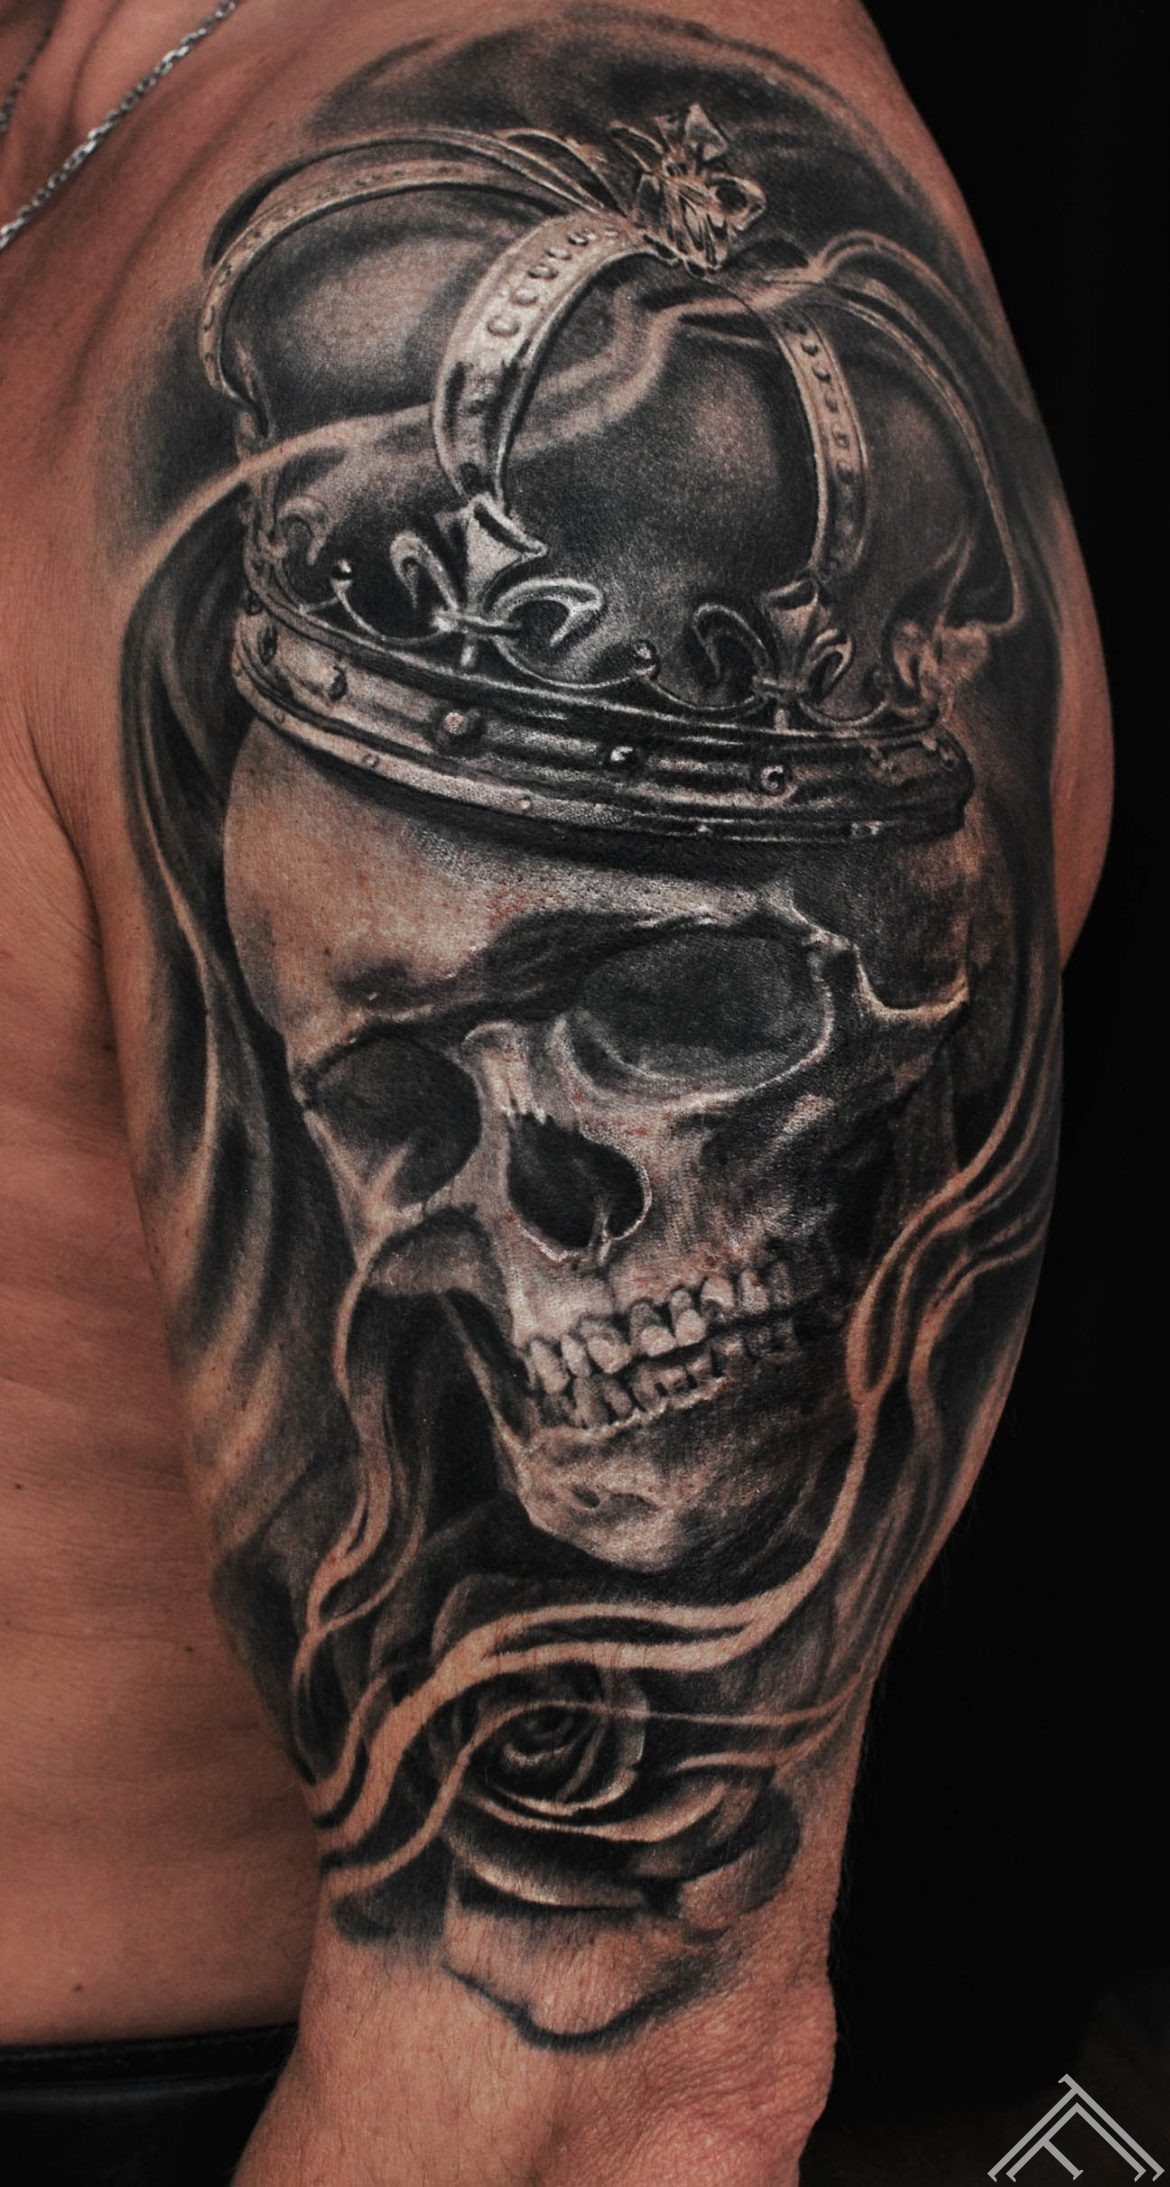 skull-tattoo-tattoofrequency-art-skull-crown-rose-smoke-riga